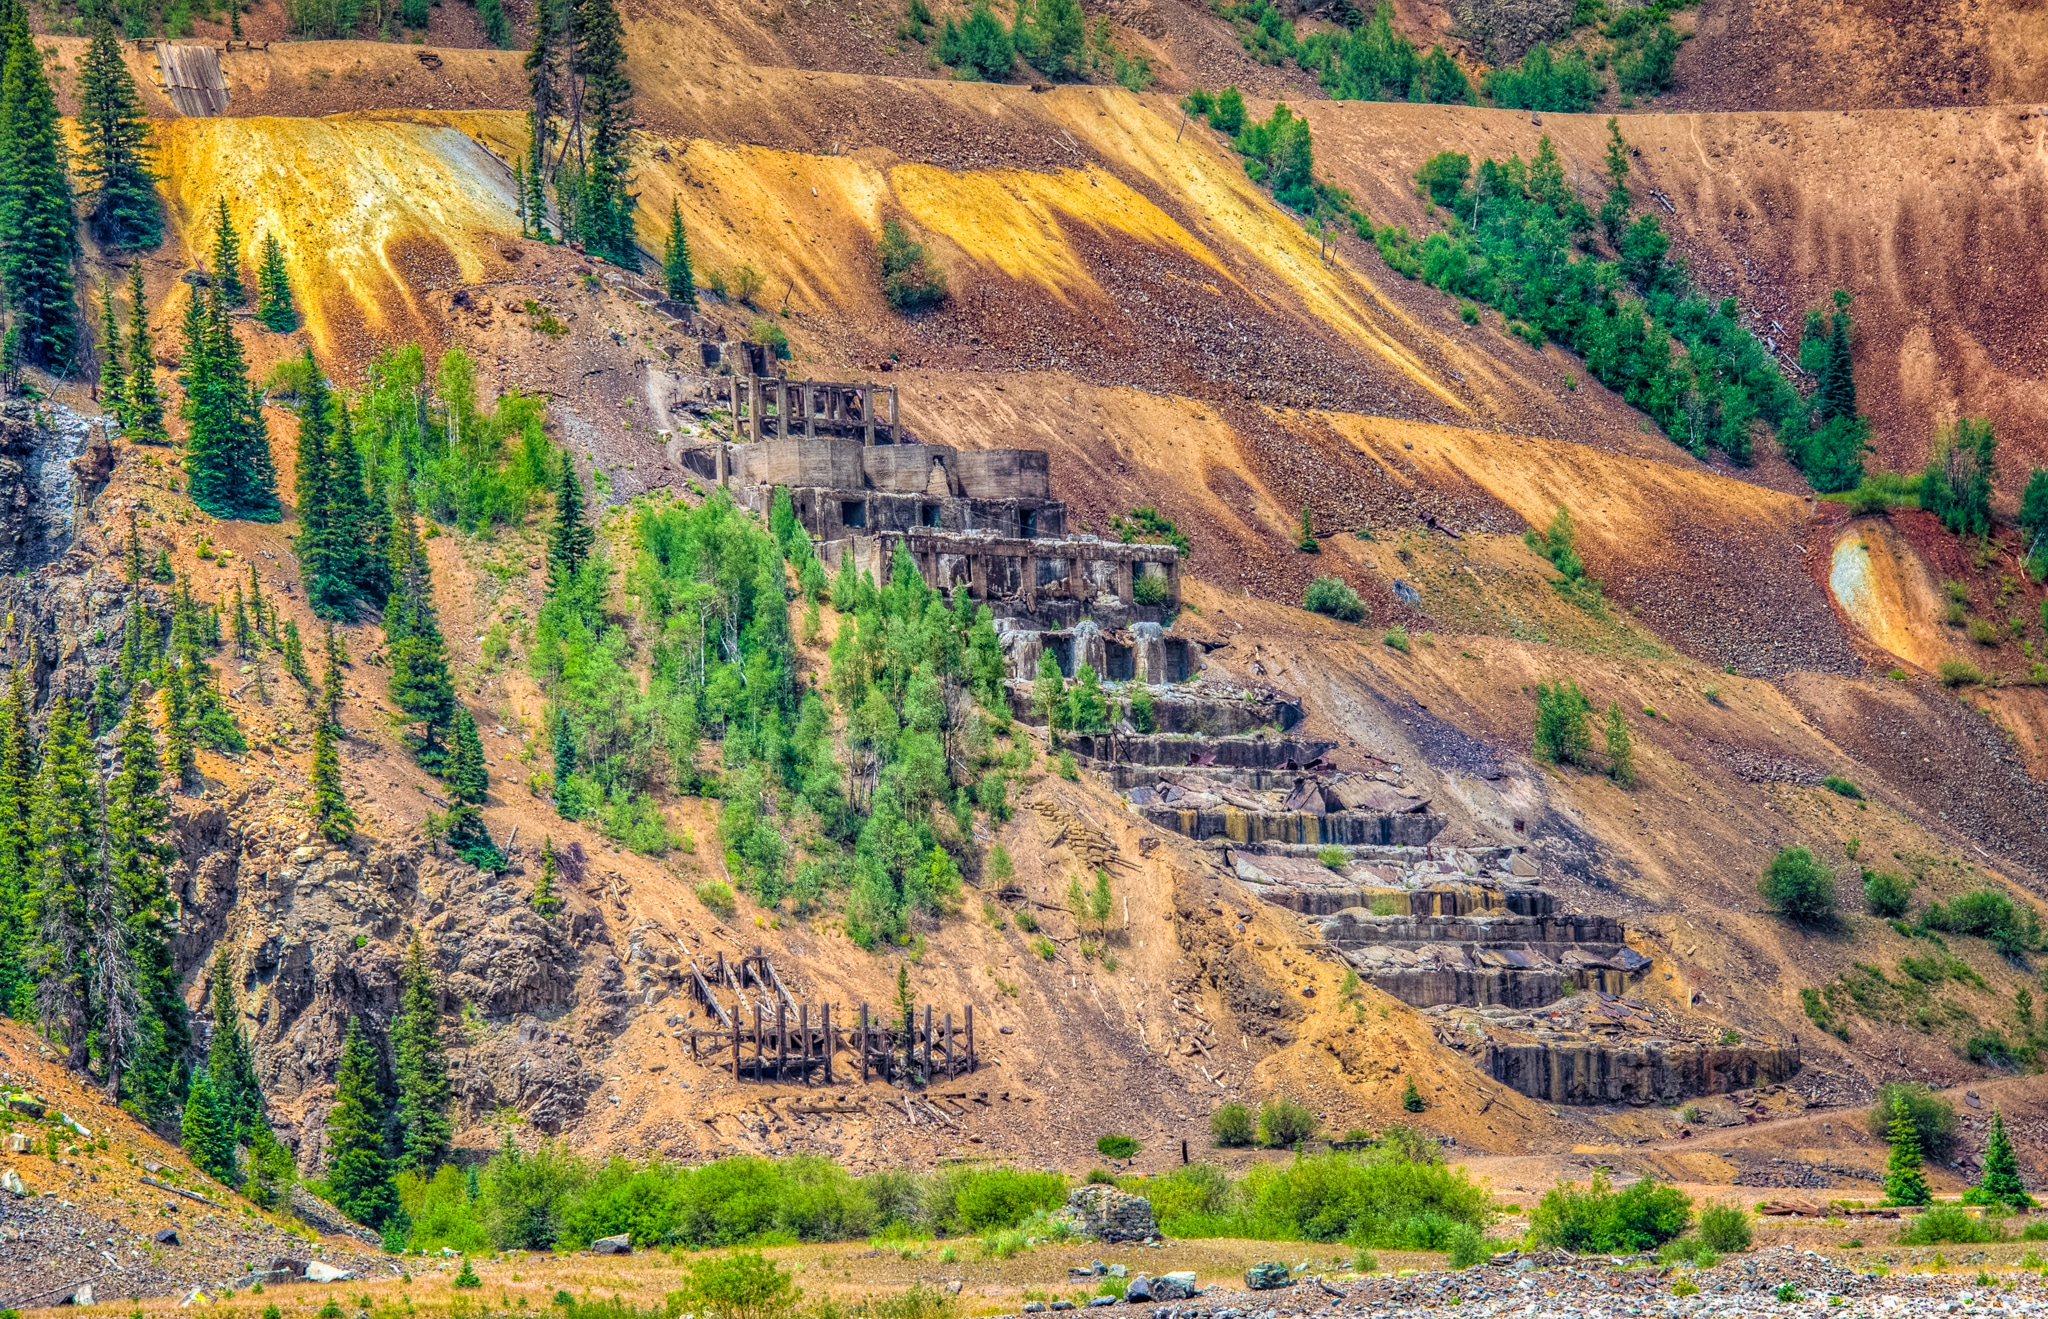 Taken from San Juan County Road 2 along the Animas River near Eureka Gulch, is a close-up view of the ruins of the Sunnyside stamping mill against a background of highly oxidized mine dump.